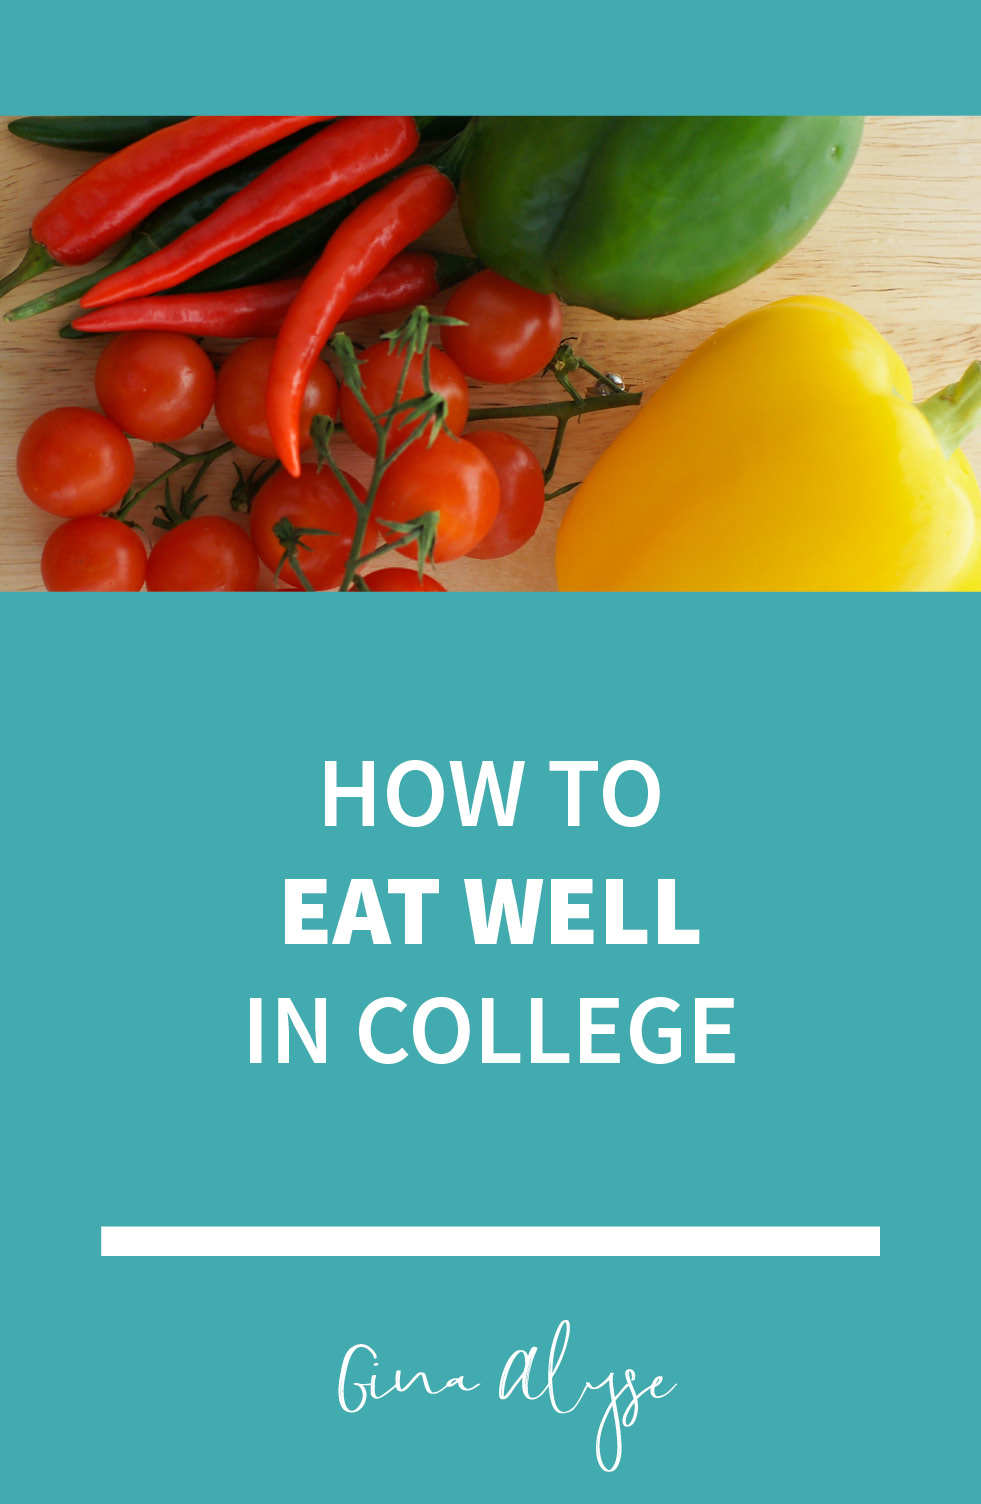 How to Eat Well In College